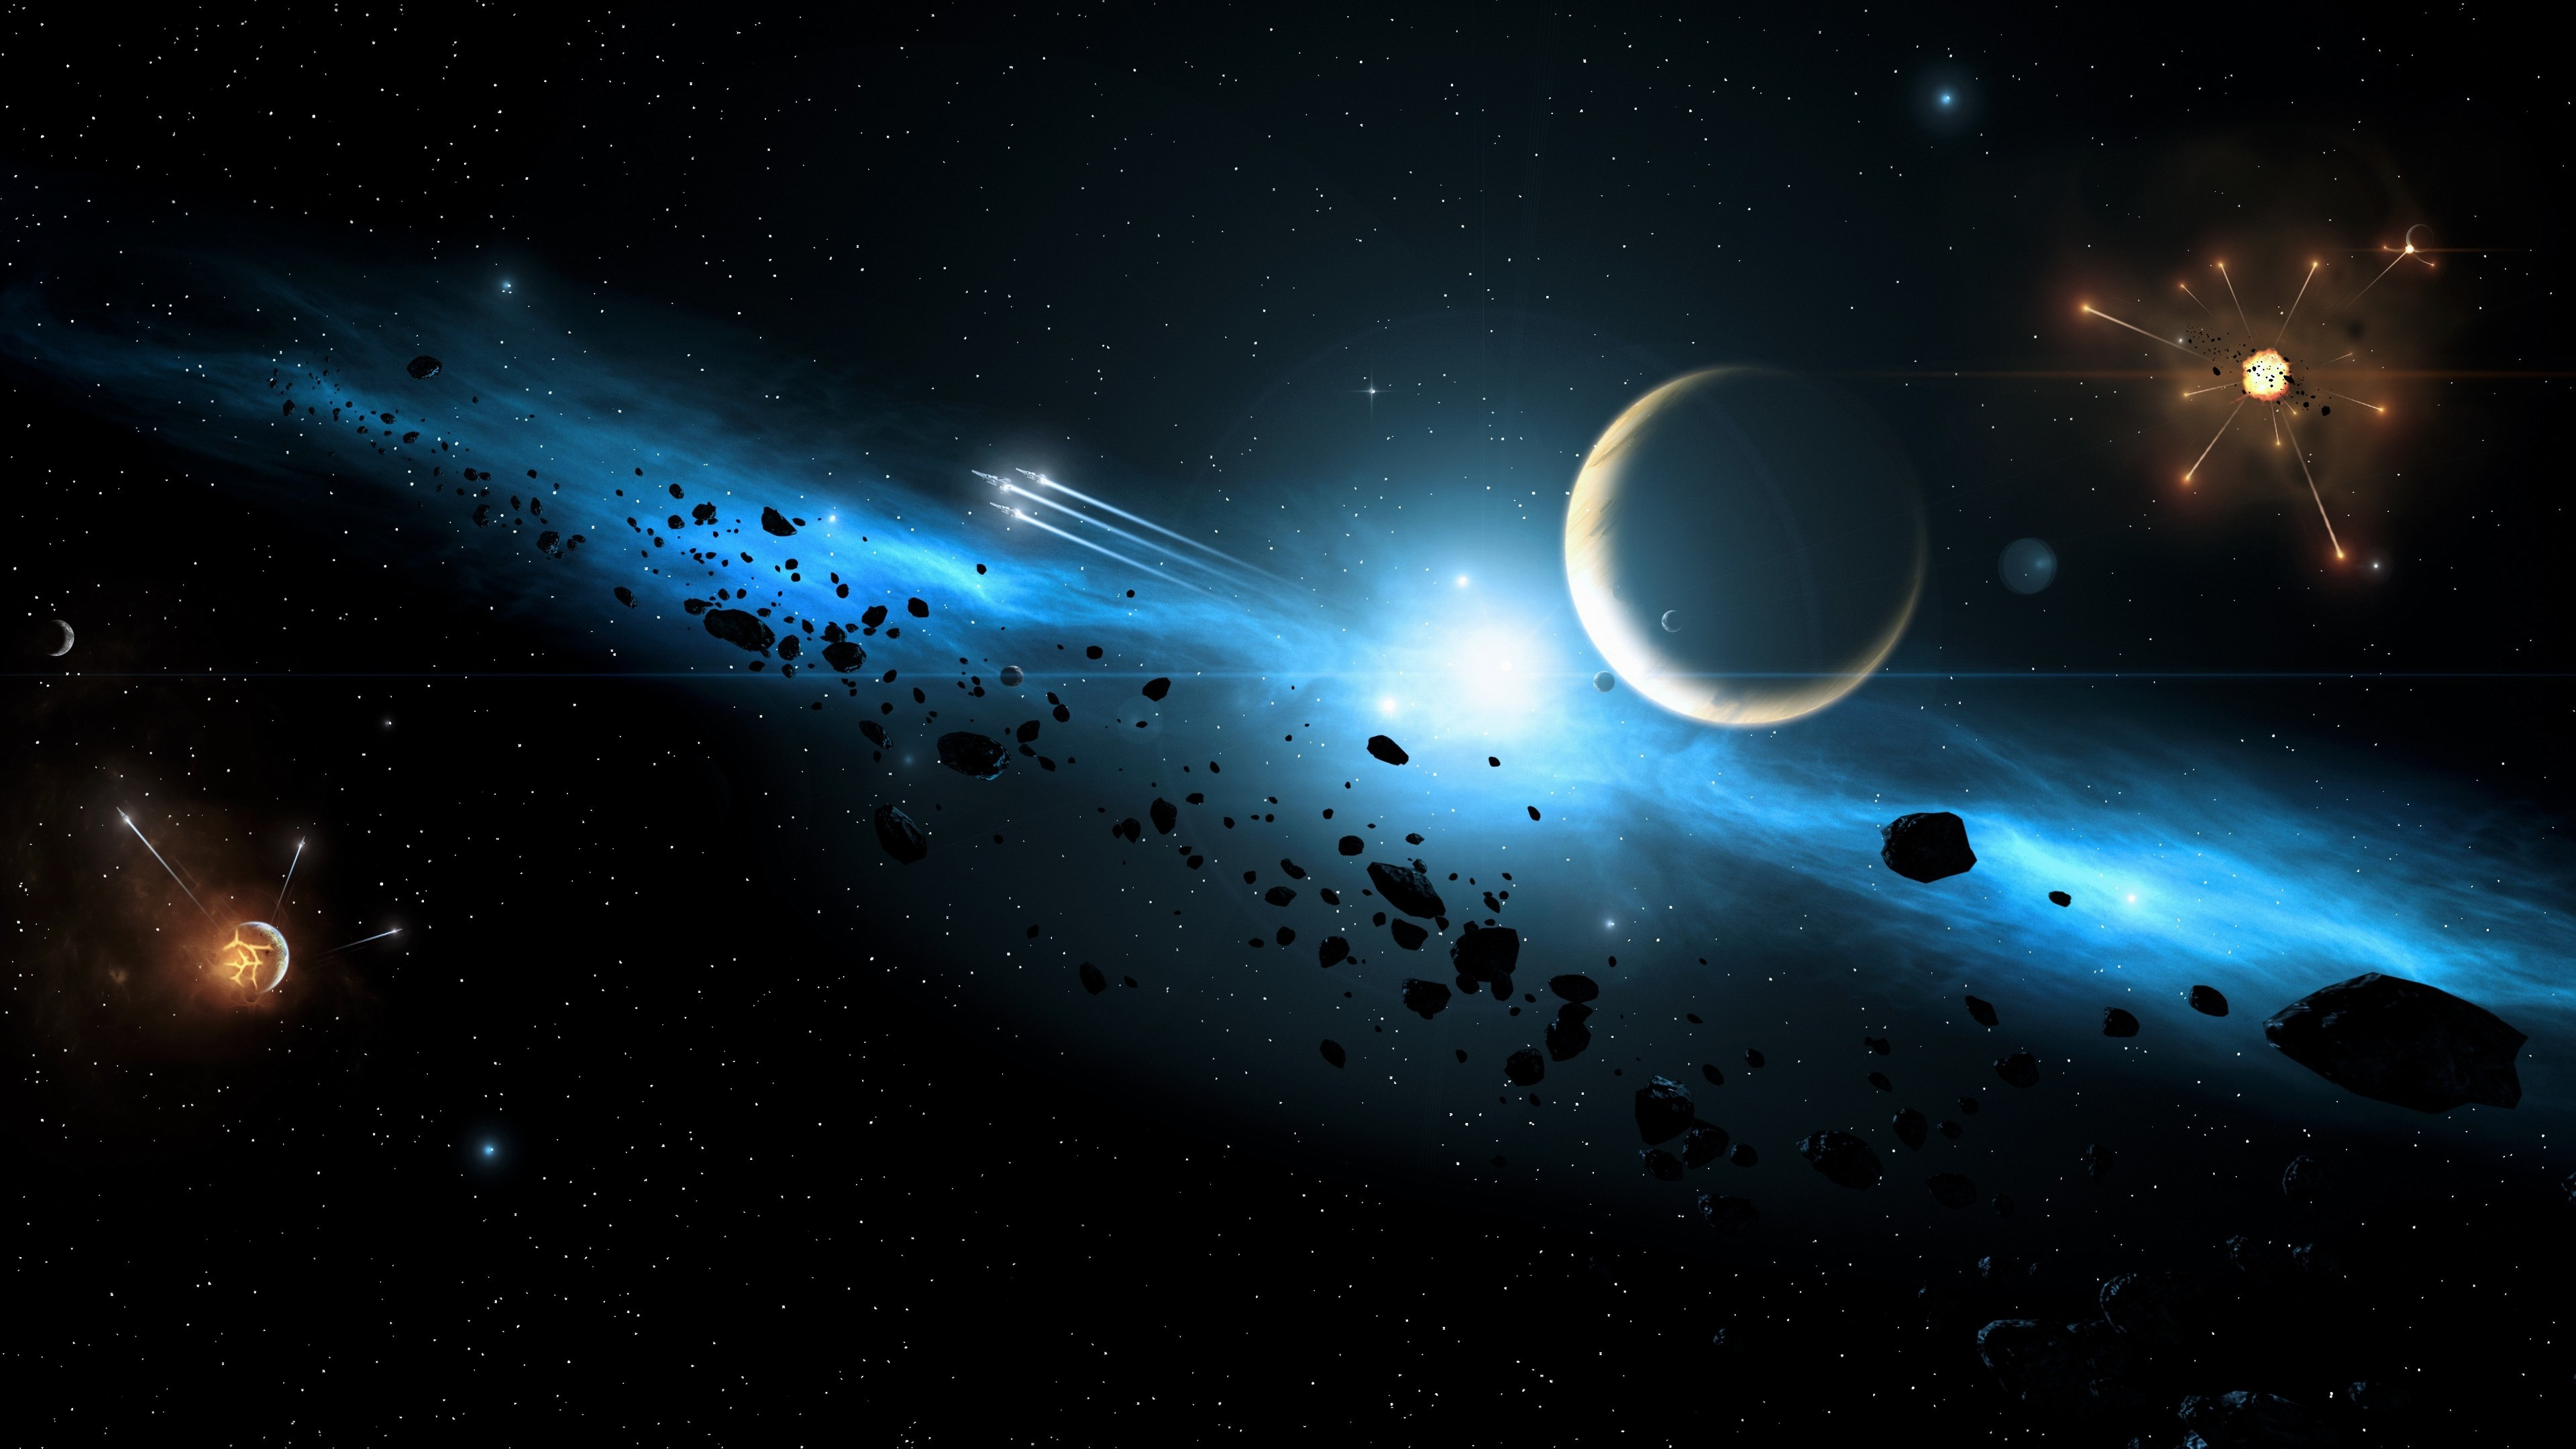 Space wallpapers 4k 77 background pictures - Spacecraft wallpaper ...